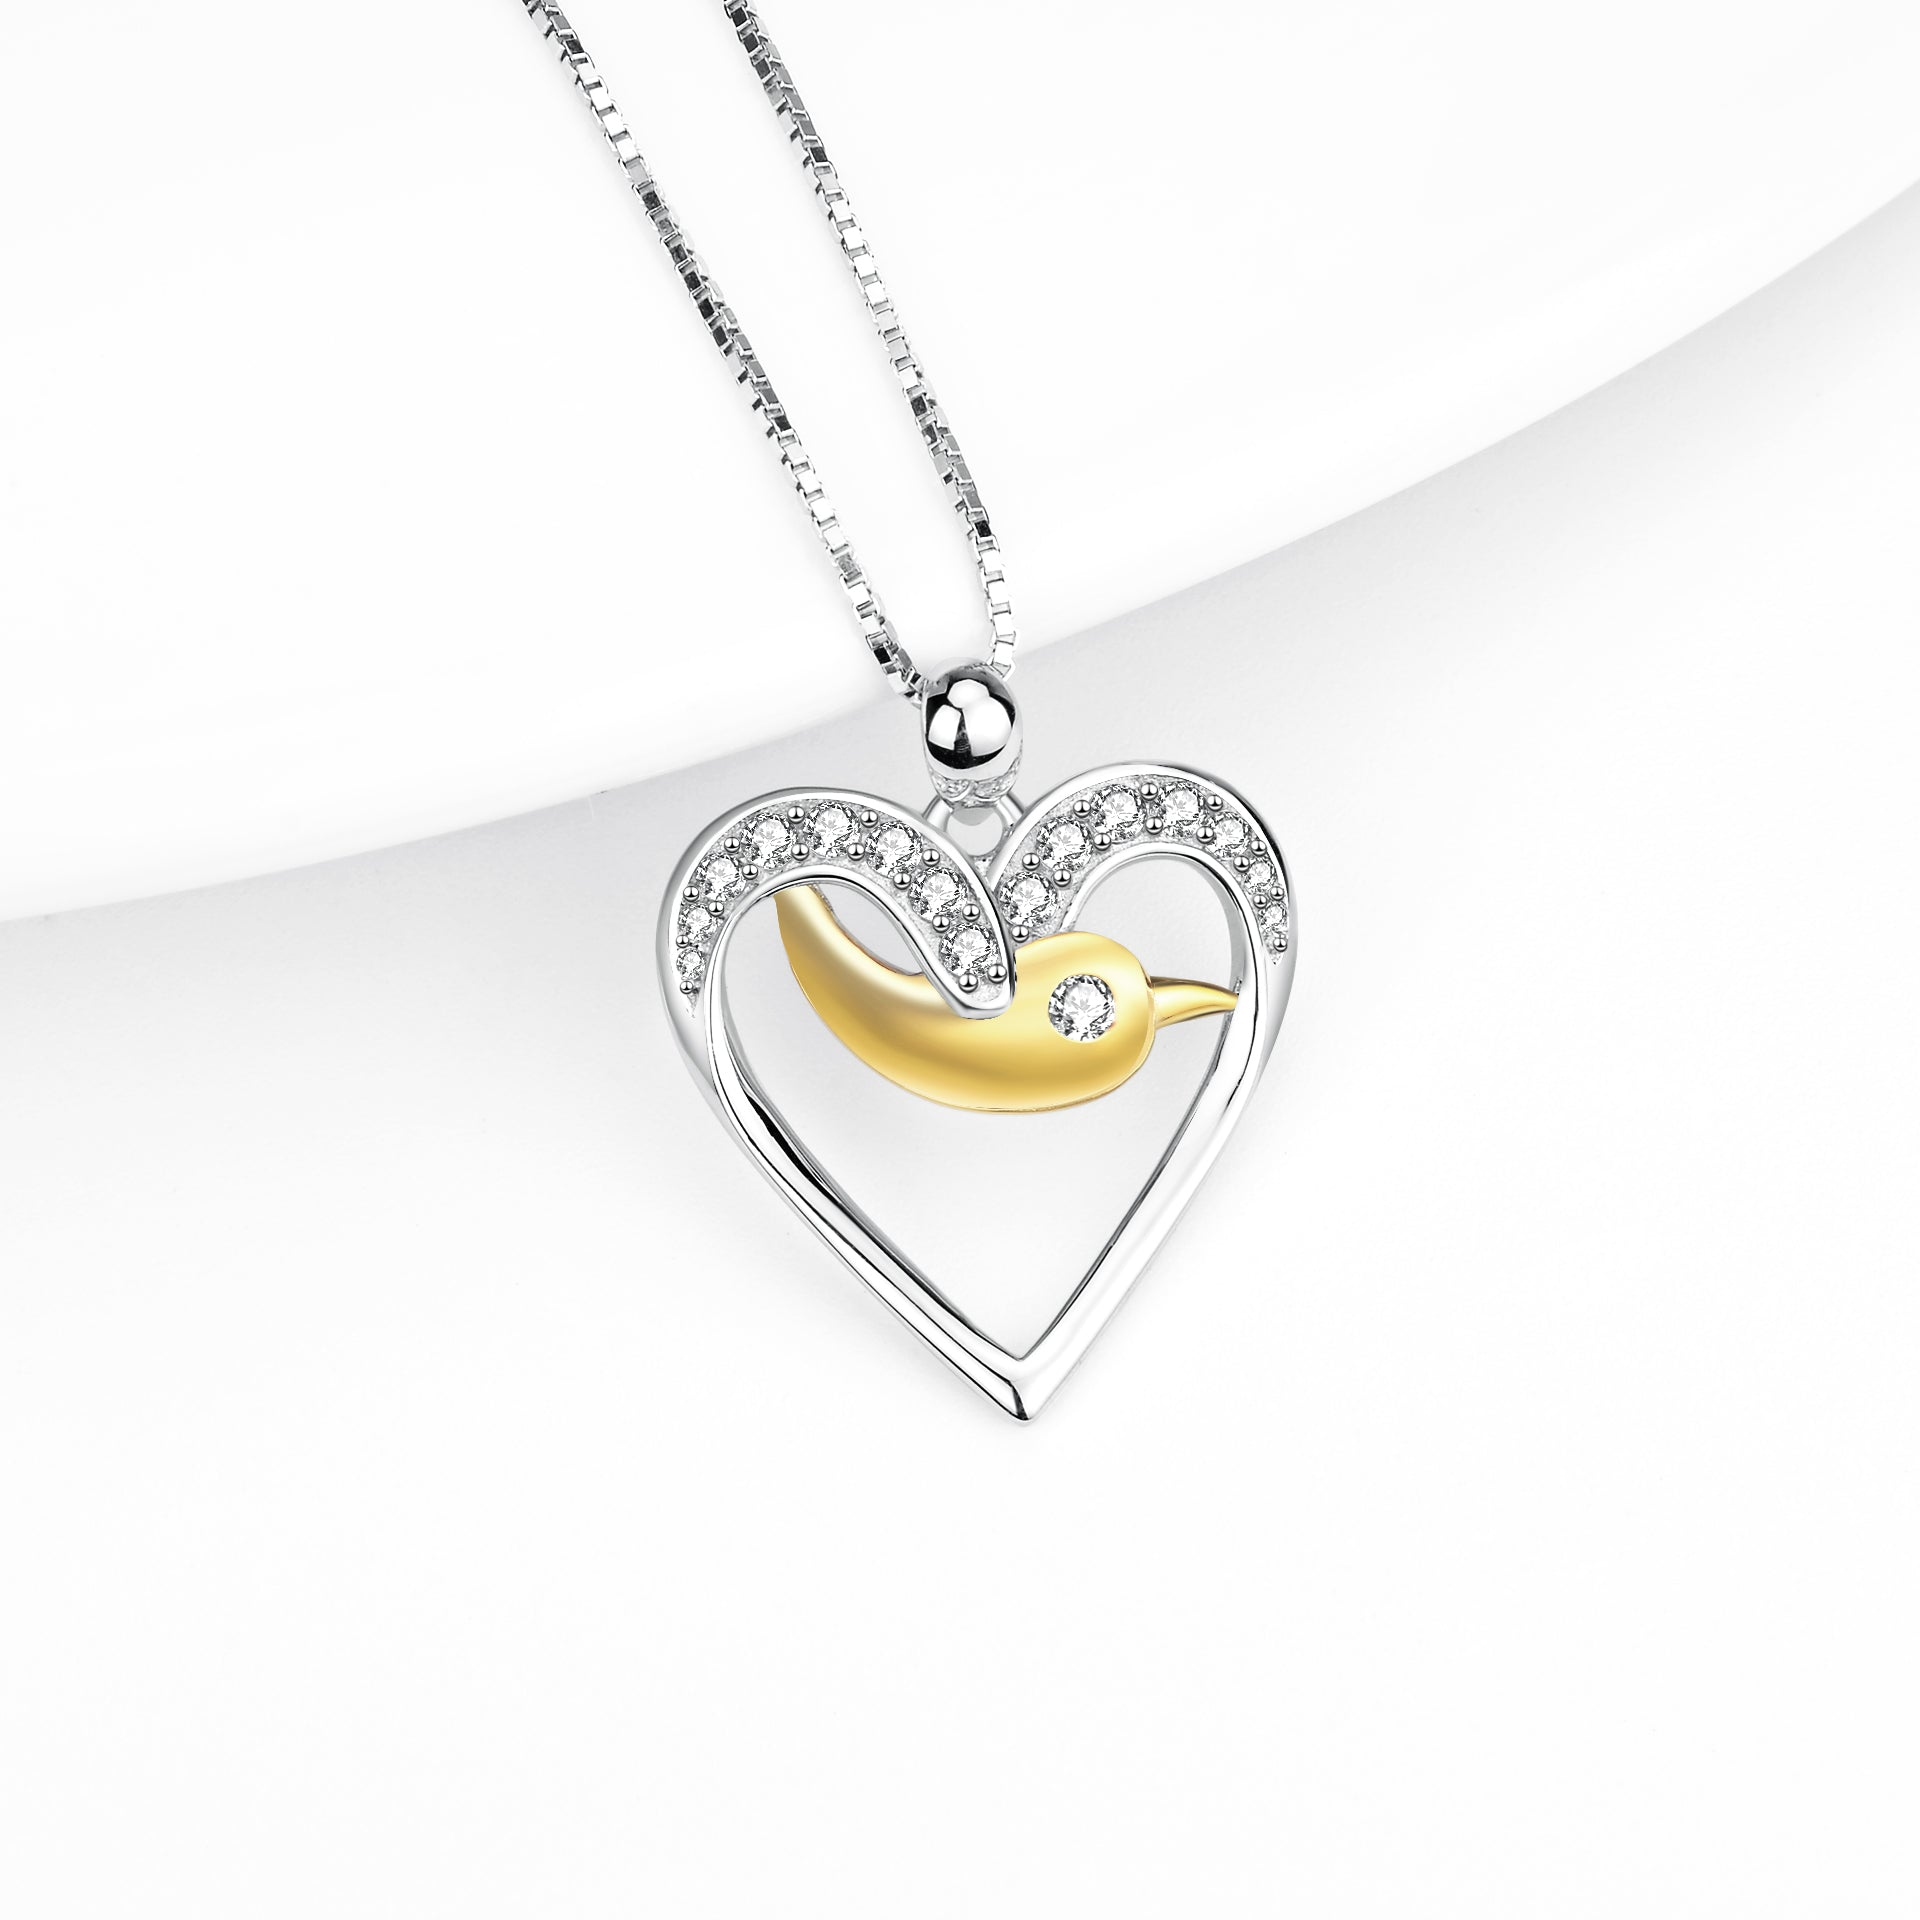 Birds Necklace Fashion 925 Sterling Silver Heart Bird Zircon Pendant Necklace